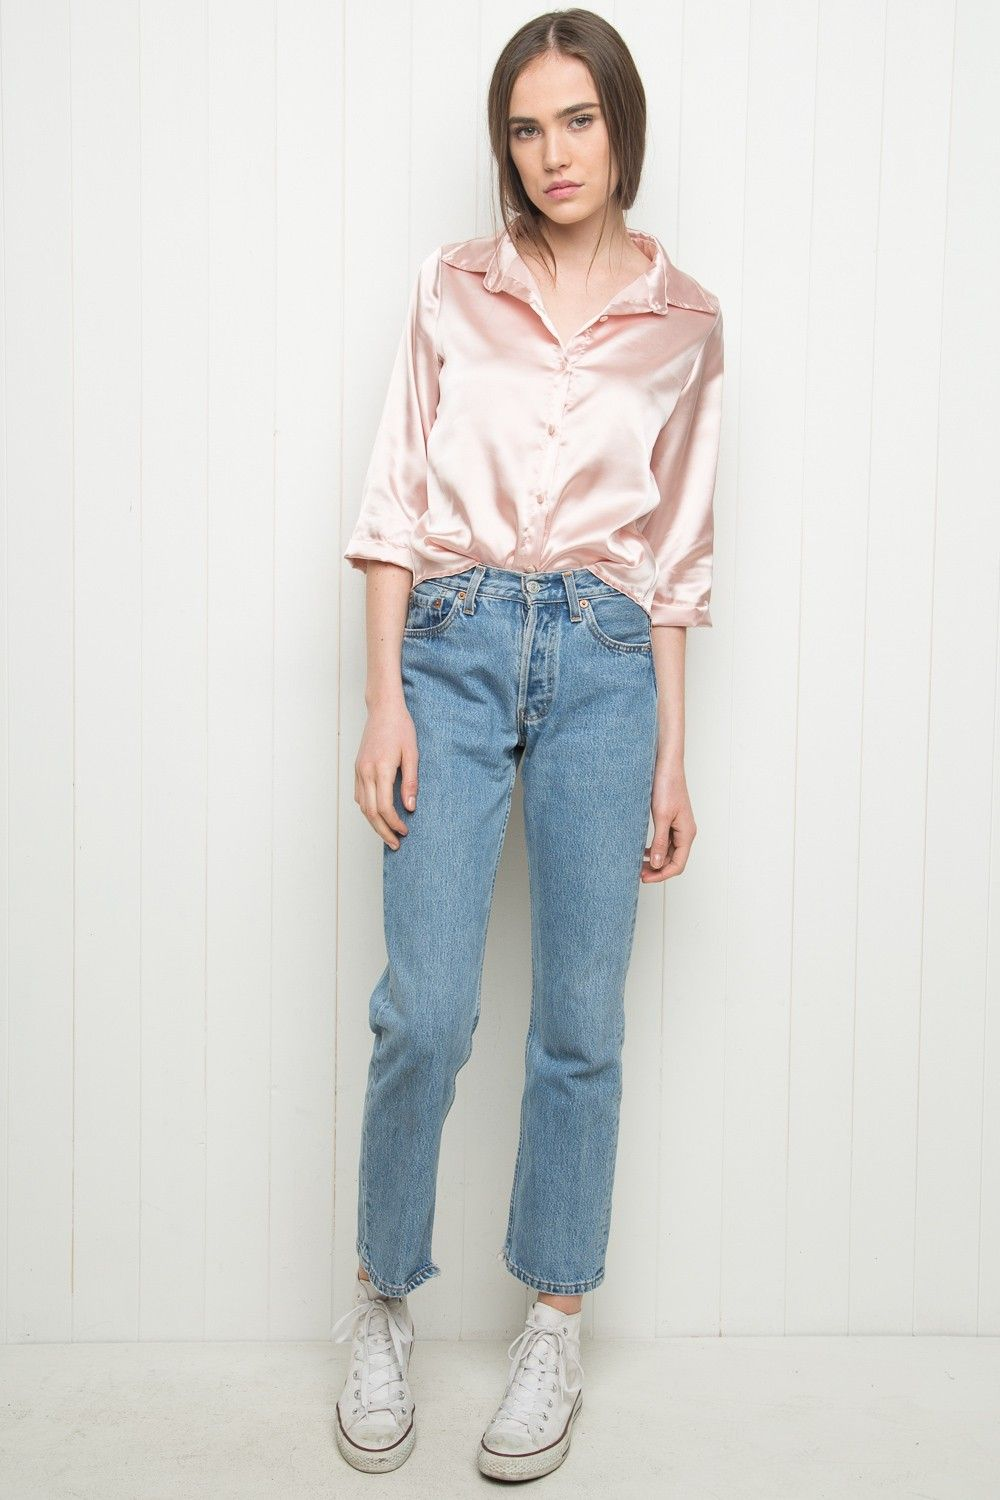 Brandy ♥ Melville | Minou Silky Shirt - Silky Pieces - Clothing